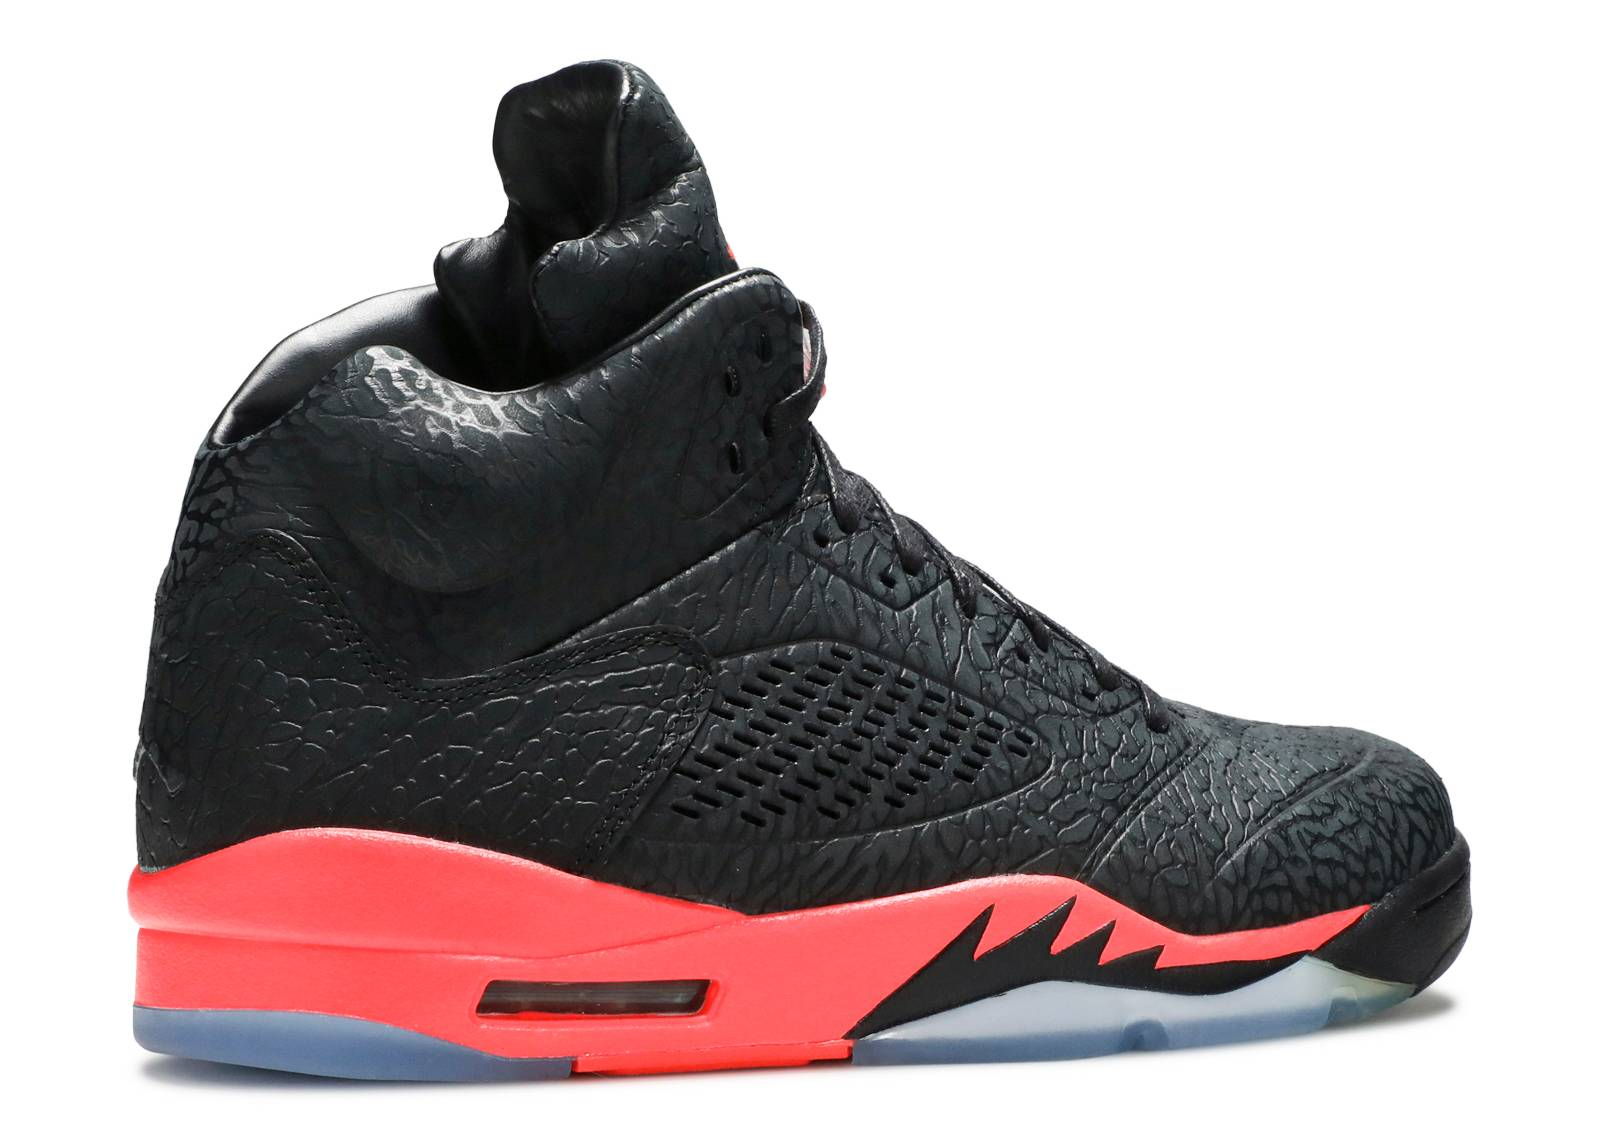 76a80d46aa2 Air Jordan 5 Retro